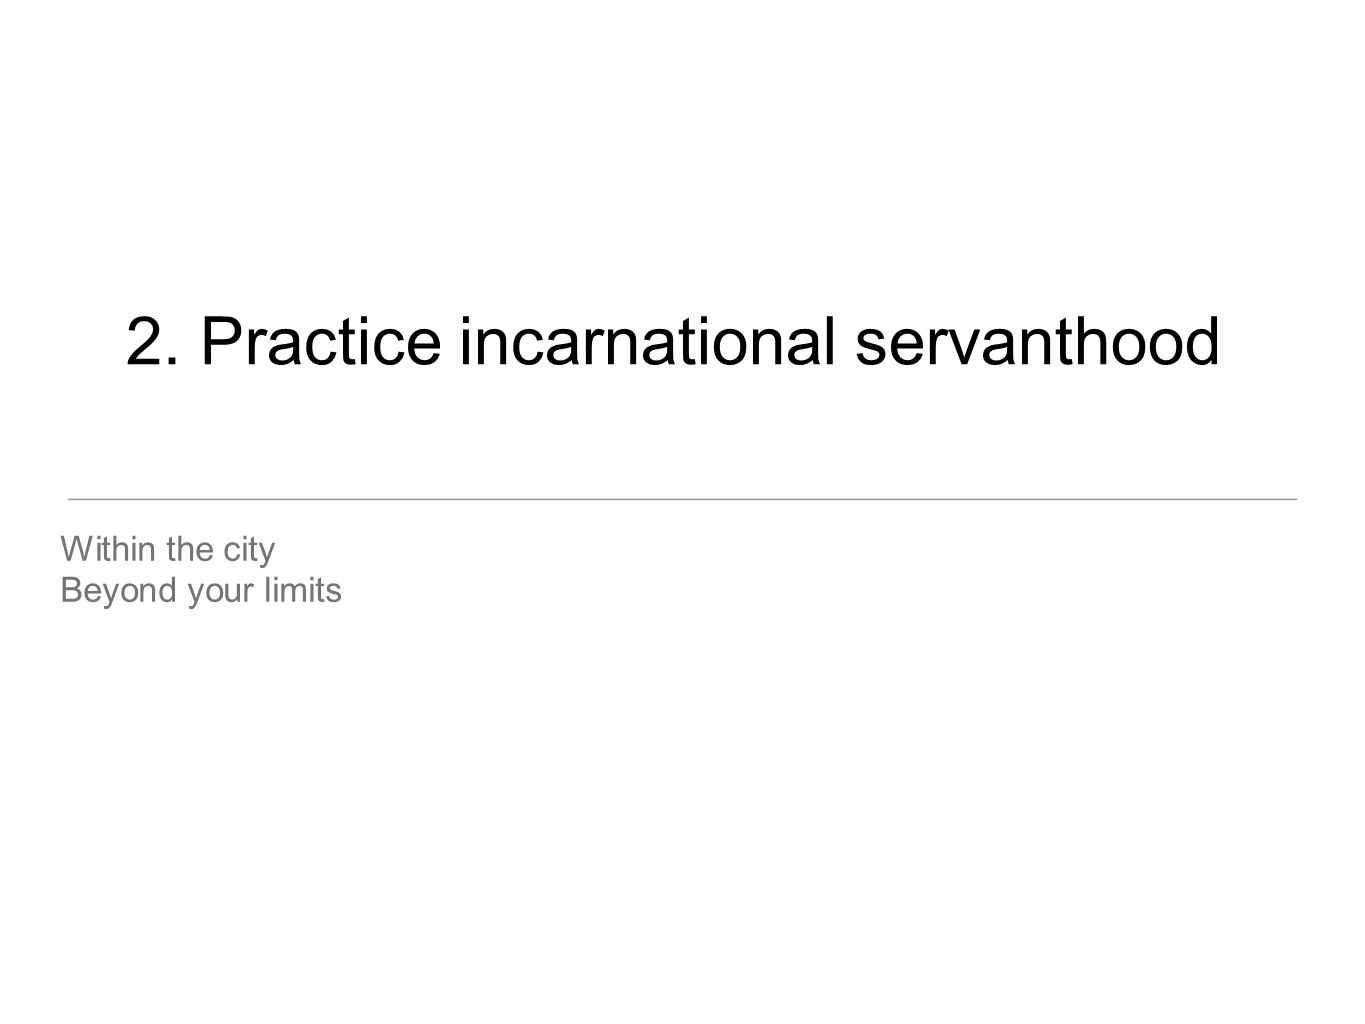 2. Practice incarnational servanthood